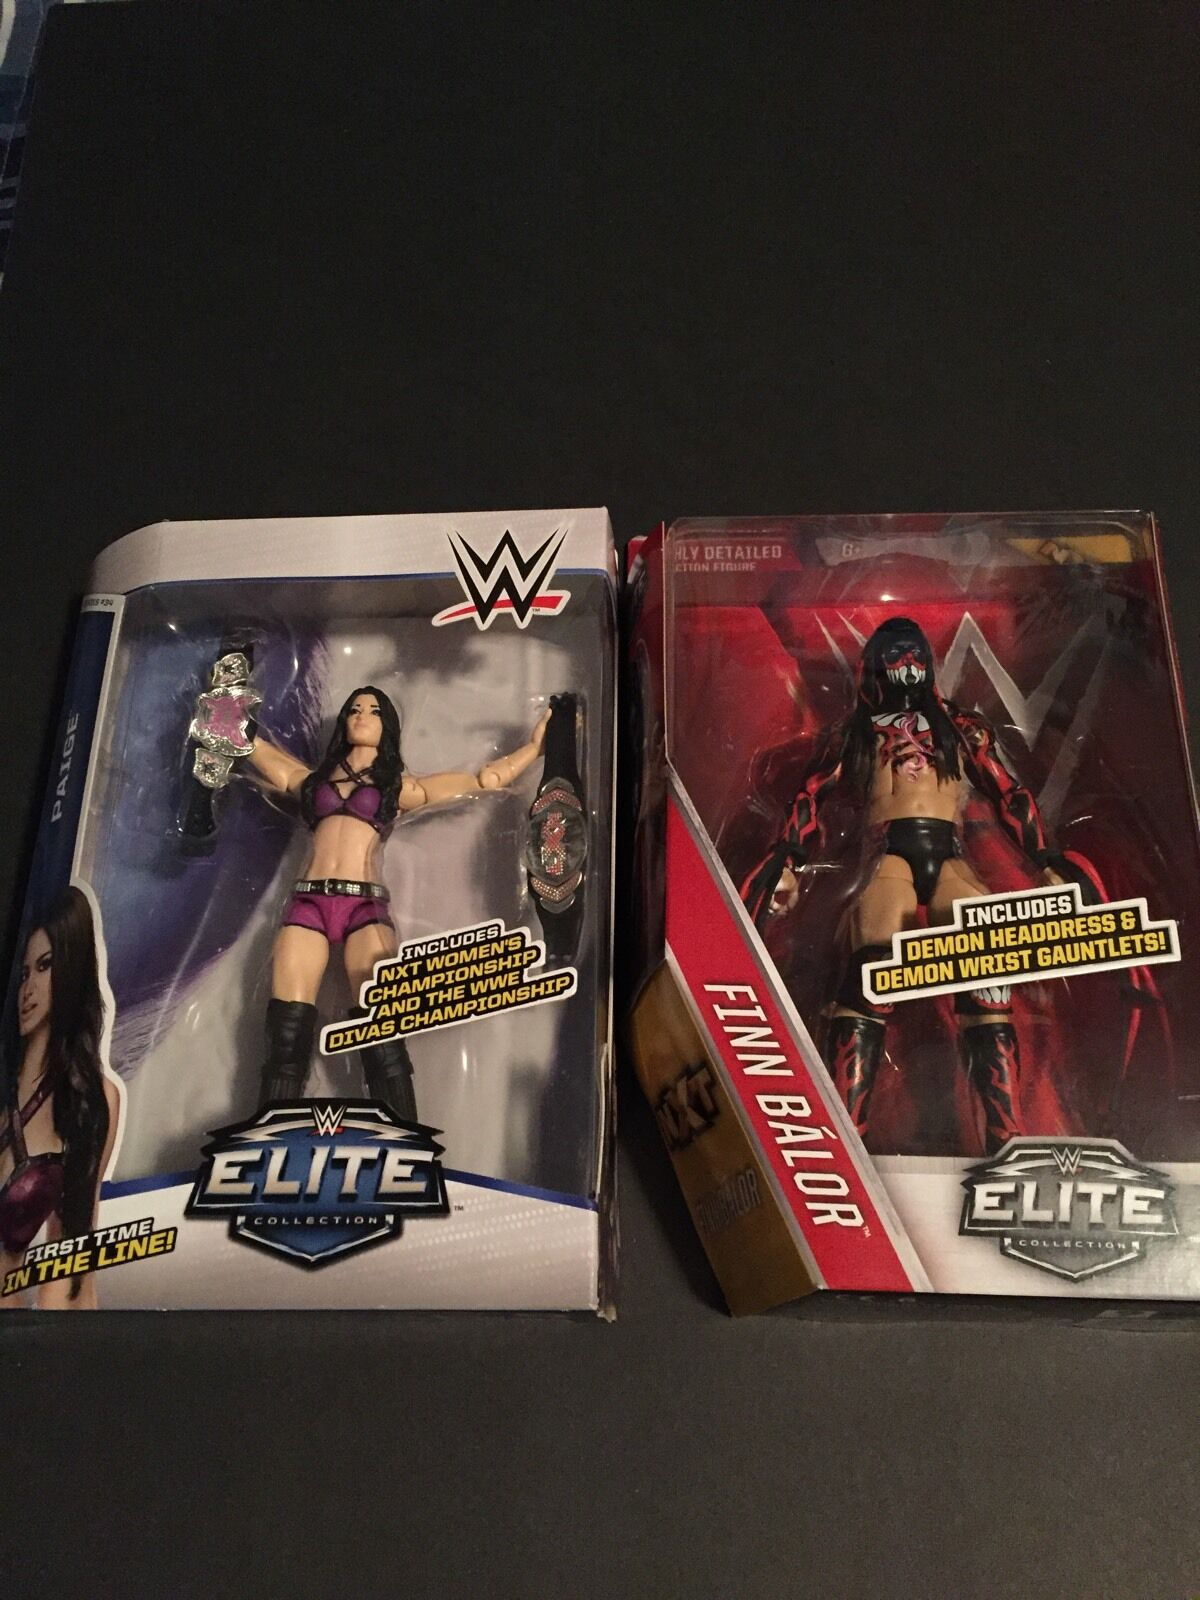 Www Elite Two azione cifra Set, Paige e Finn Baylor  Great Price